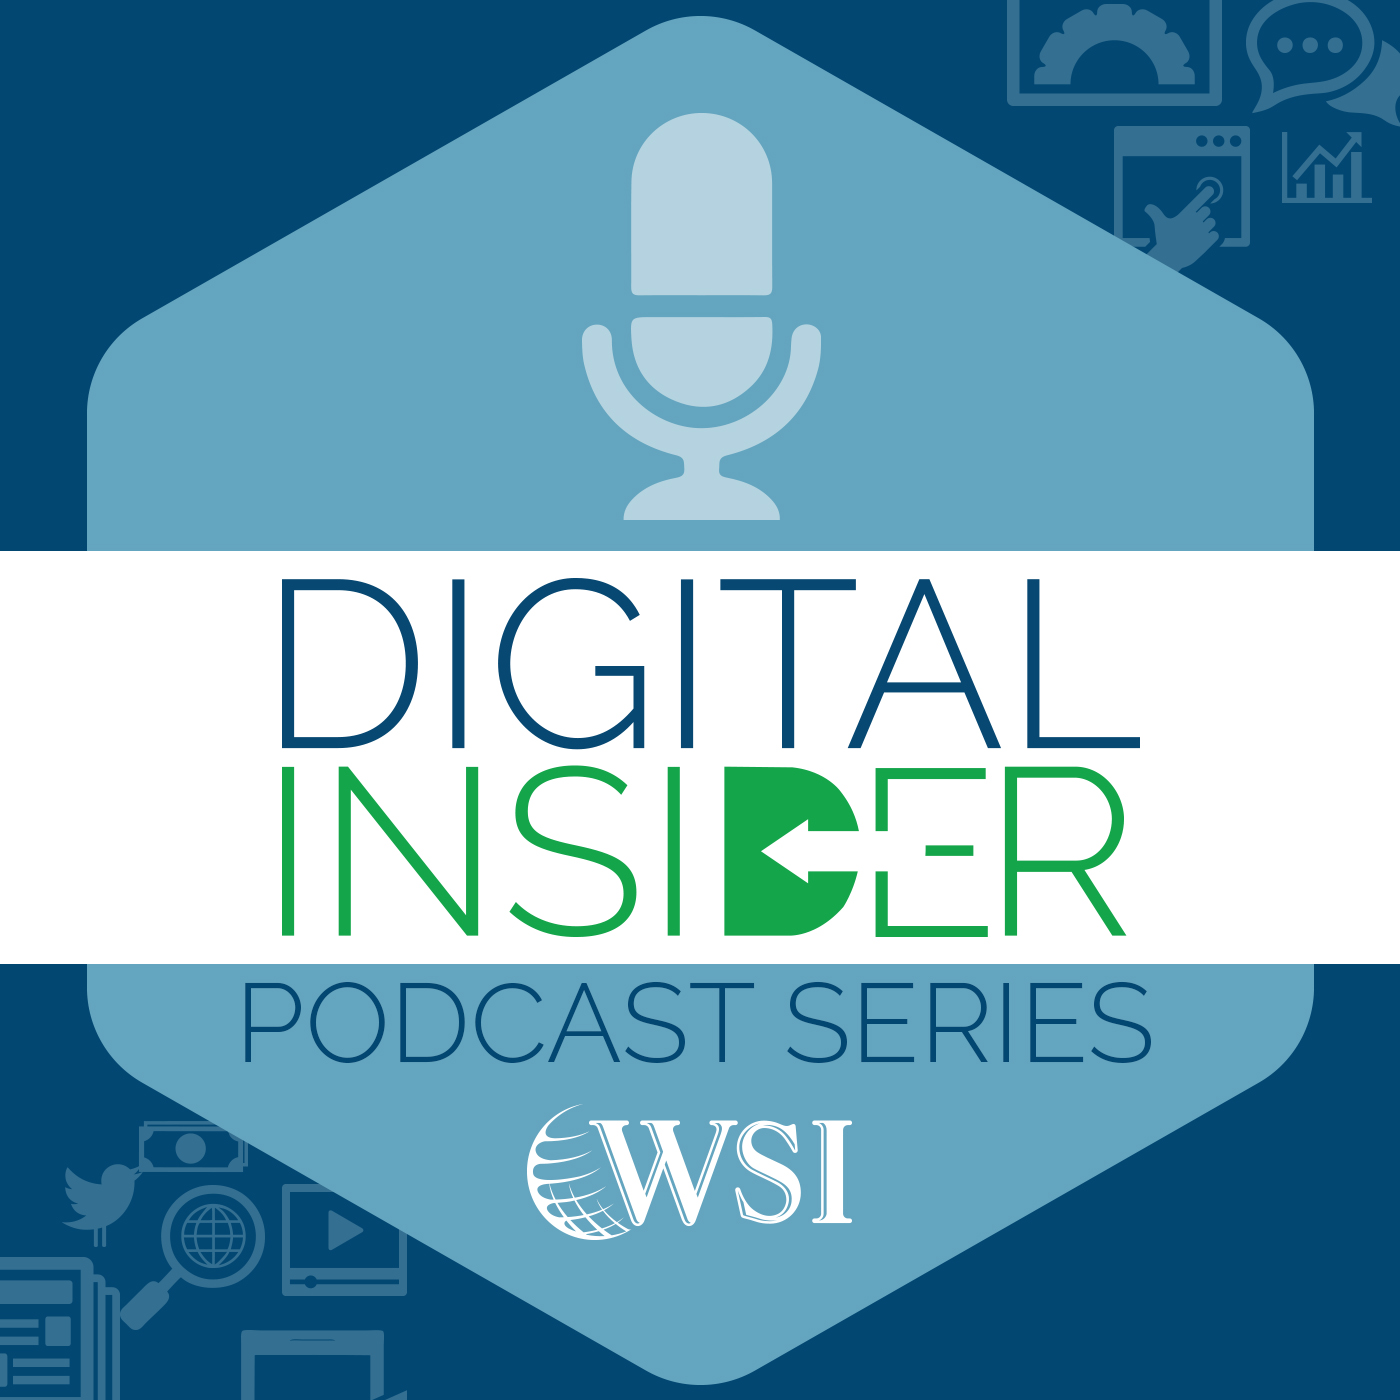 January 2015 - WSI, Digital Insider Podcast